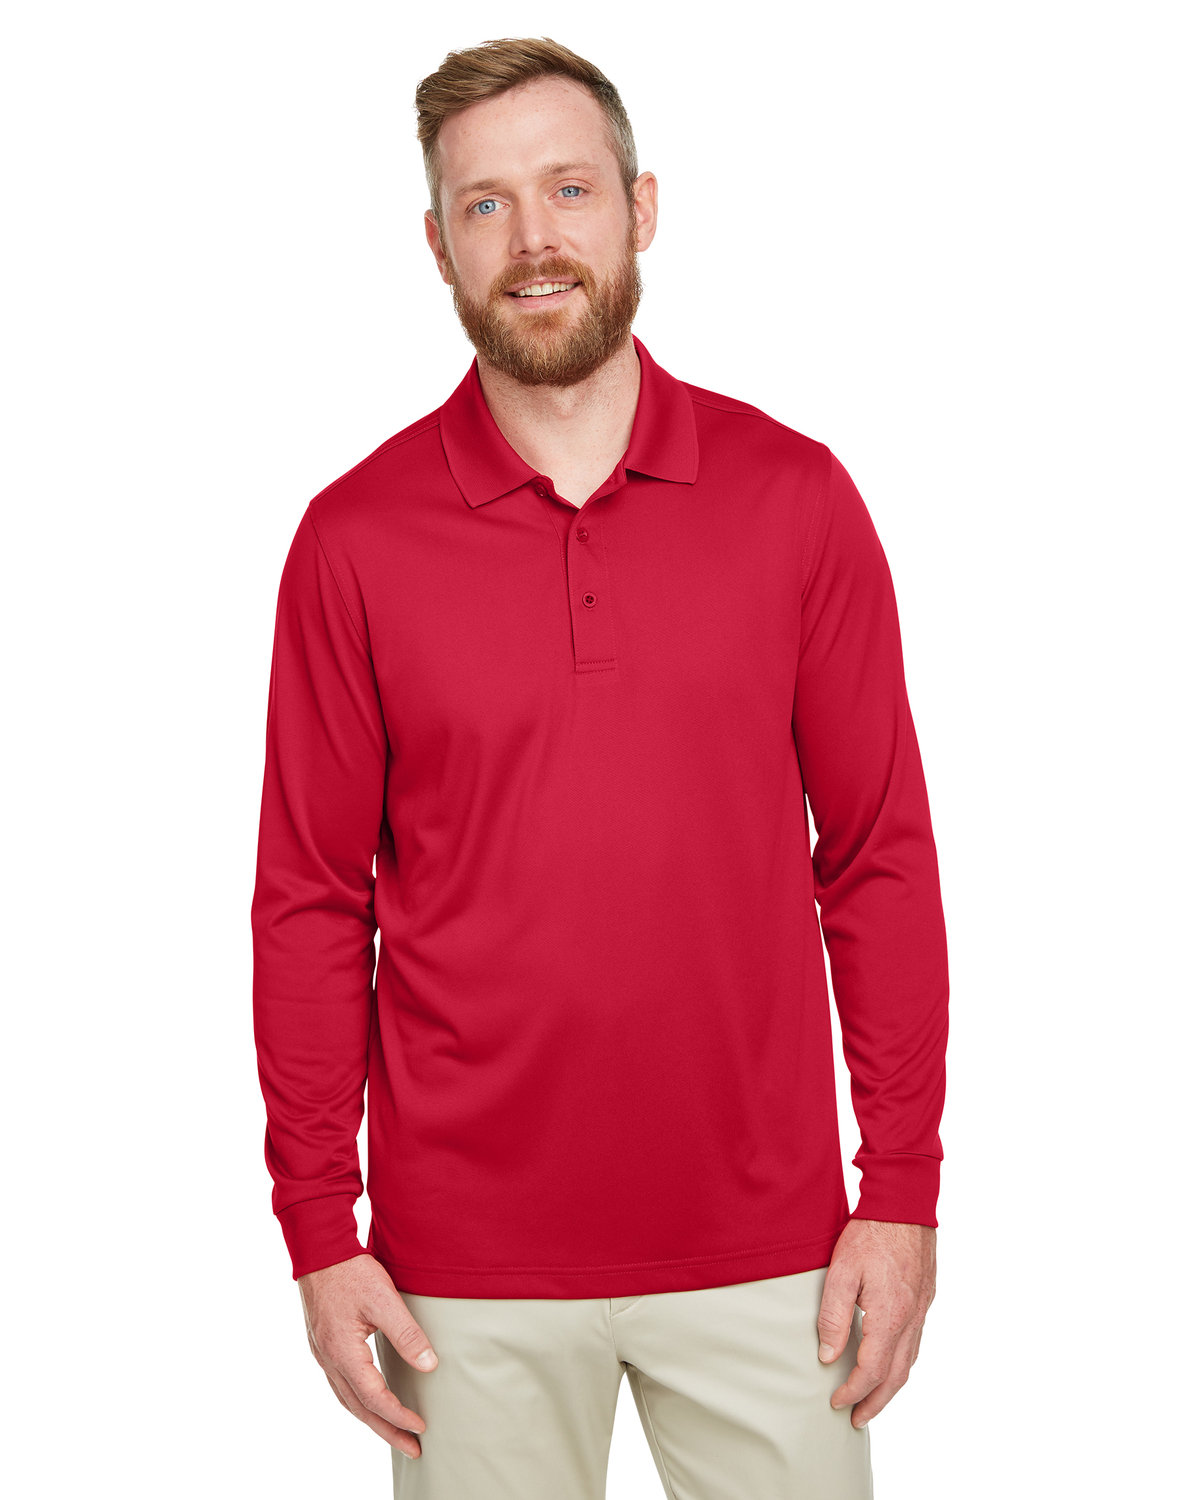 Harriton Men's Advantage Snag Protection Plus IL Long Sleeve Polo RED